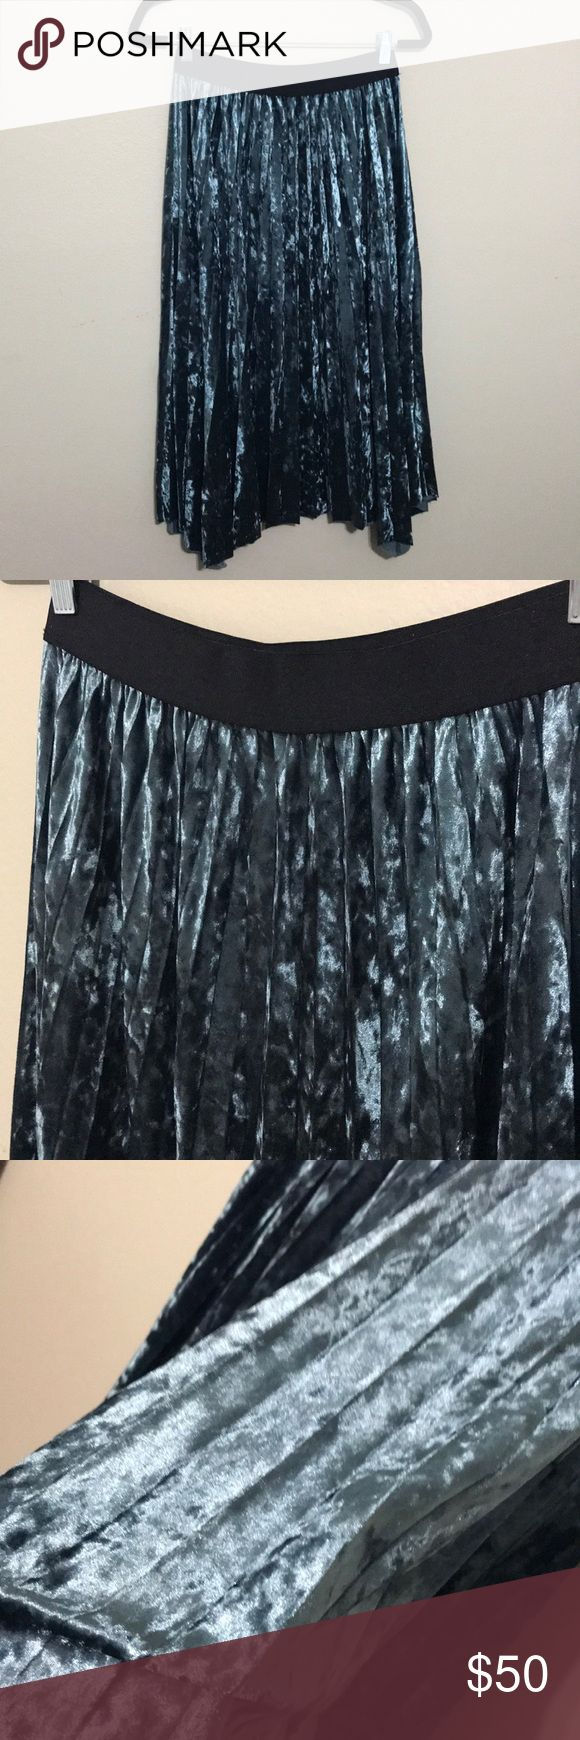 Max Studio Velvet blue pleated skirt Beautiful pleated skirt from max studio. NWT, crushes velvet look is super soft to touch. Elastic waistband, baby blue color with silver shift. Perfect for a night out on the Town! Max Studio Skirts Midi